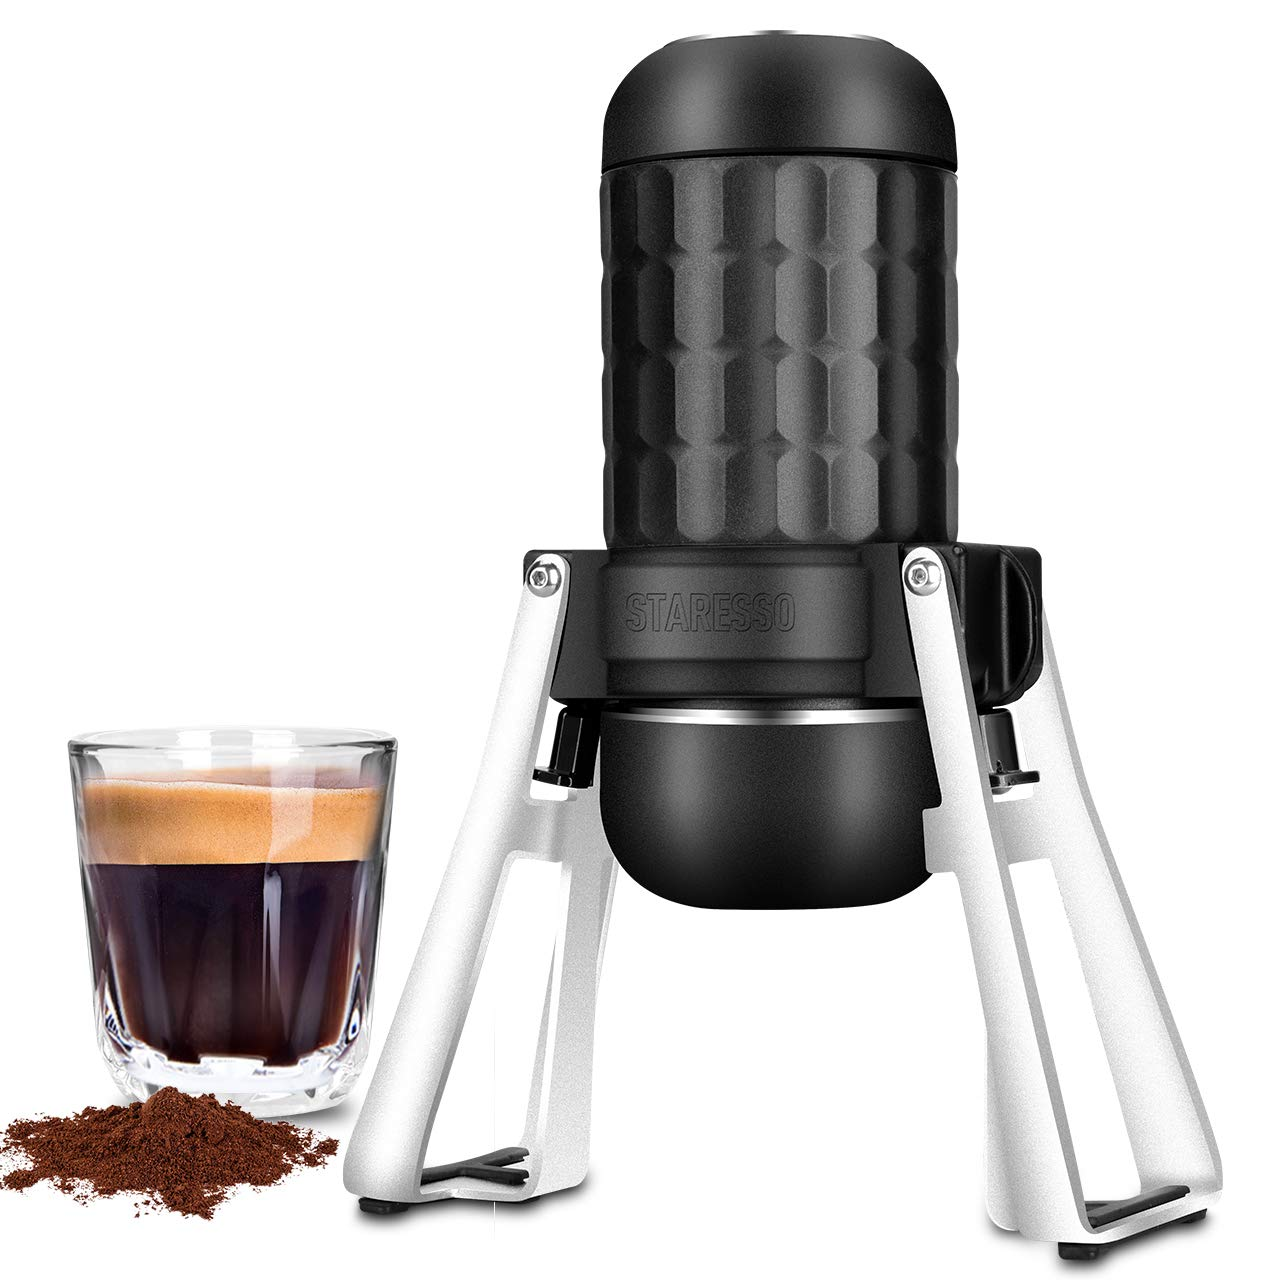 STARESSO Portable Espresso Maker, 3rd Gen Upgraded Manual Espresso Machine,【Professional 15~20 Bar】【Two Shots at One Time】【Food Grade Material】Cool Compact for Travel Camping & Kitchen Office by STARESSO